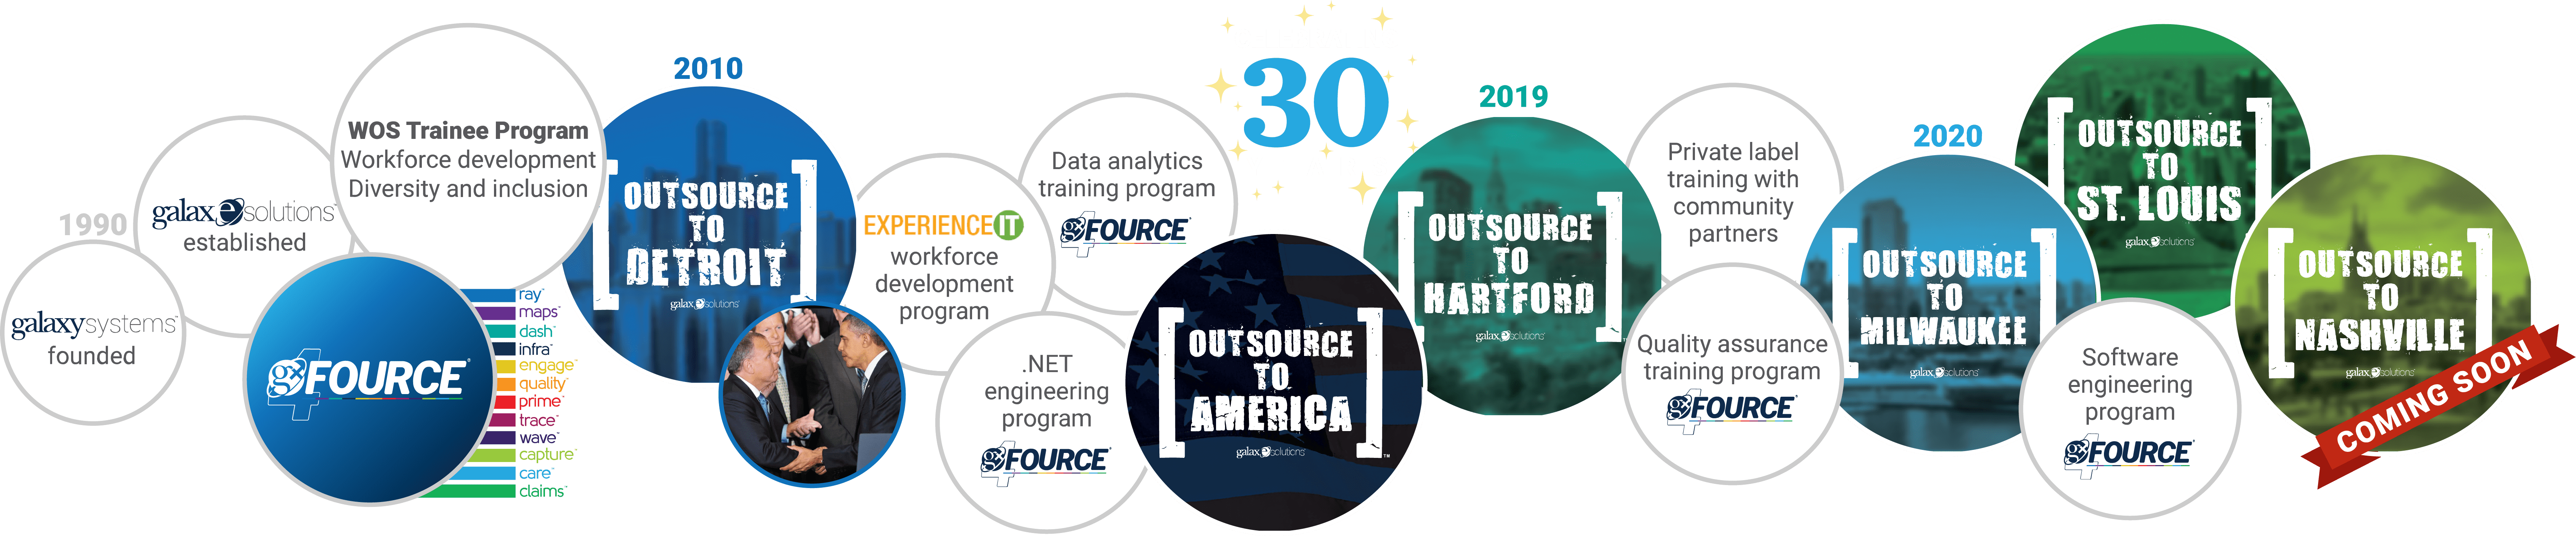 Outsource to America timeline